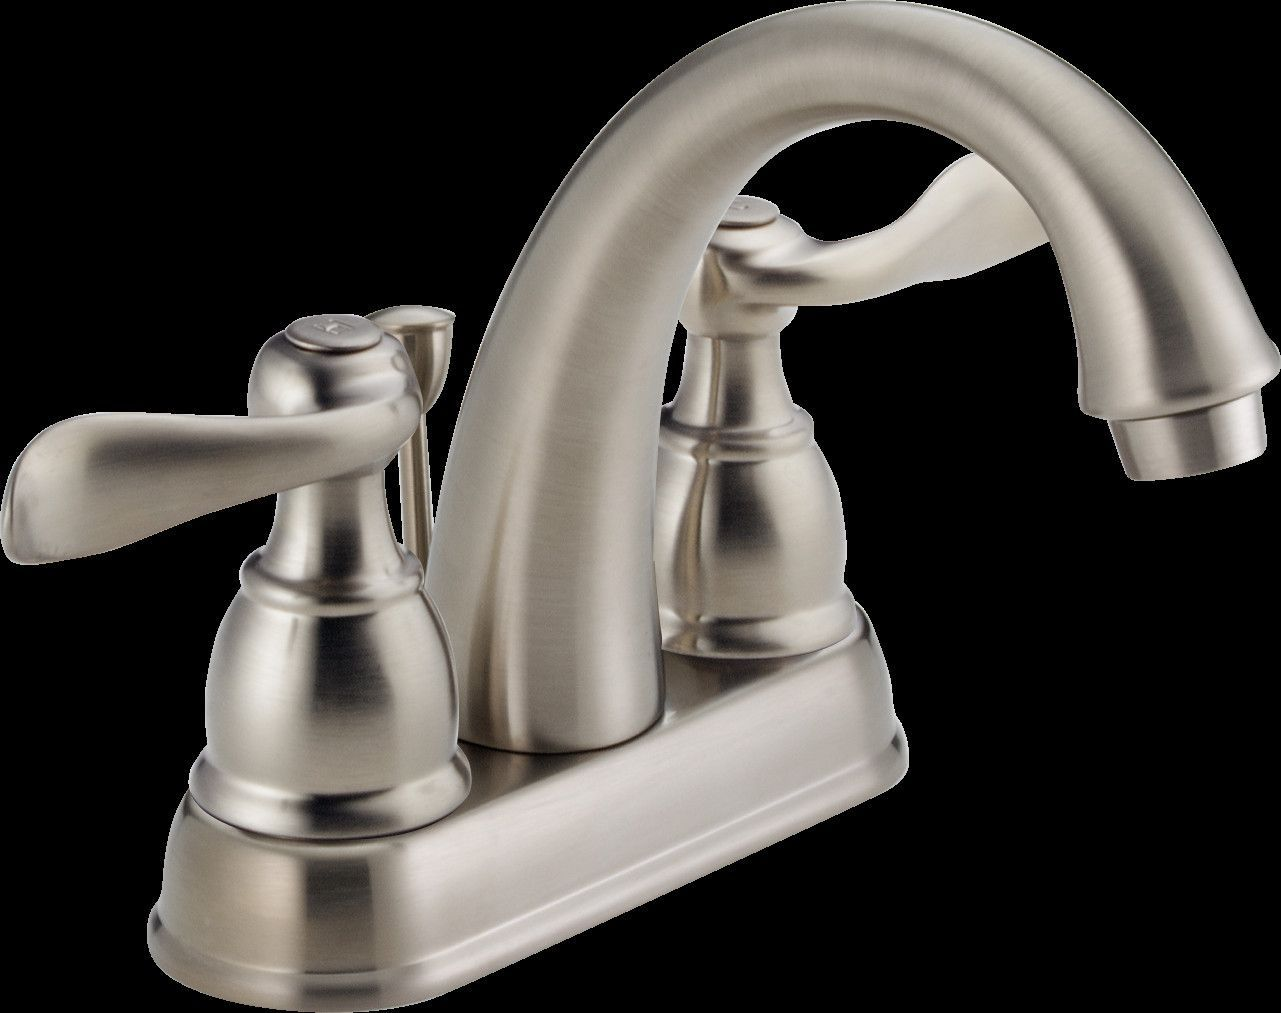 Windemere Centerset Bathroom Faucet with Drain Assembly and Diamond ...